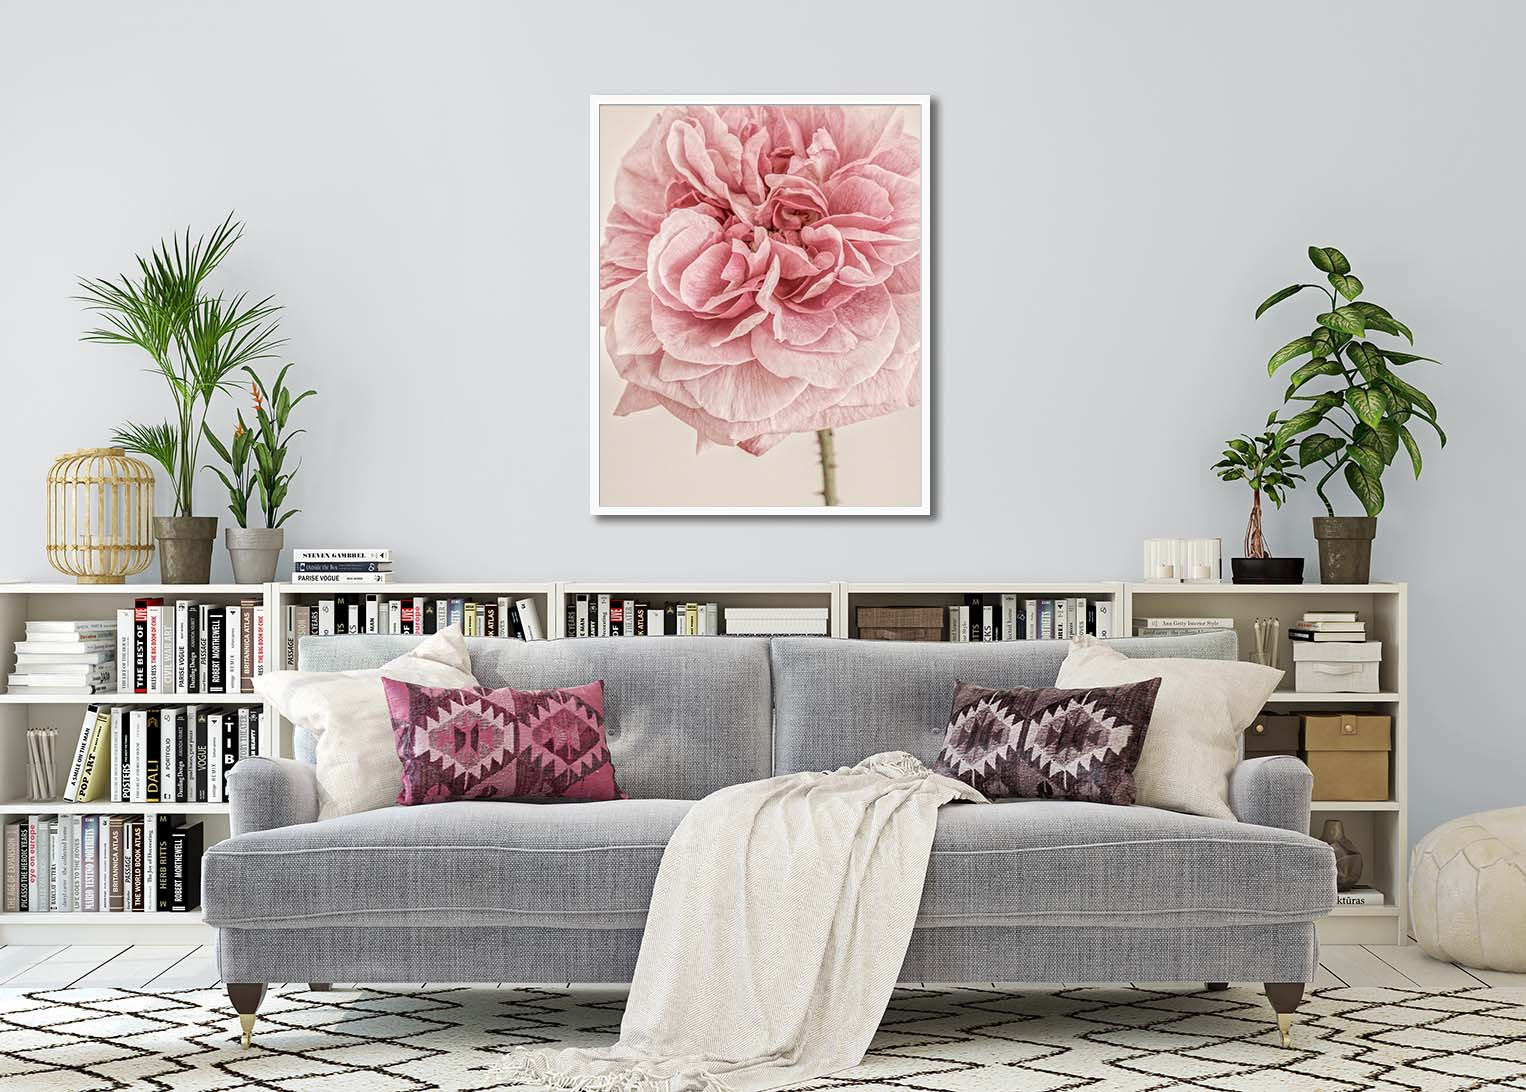 Limited edition fine art floral print of a dahlia by Paul Coghlin FBIPP